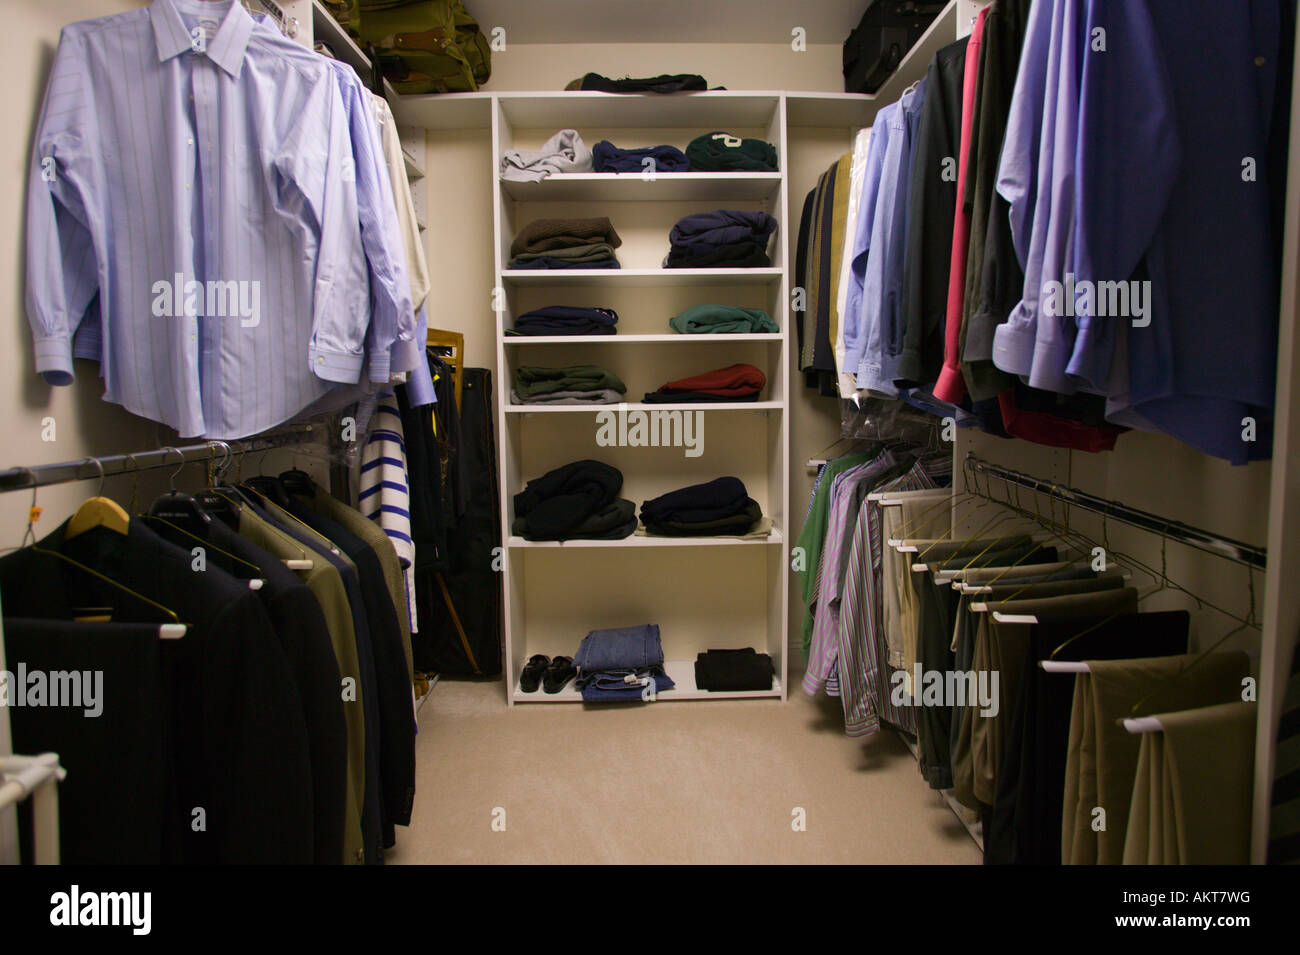 Organize Room Stock Photos & Organize Room Stock Images ...